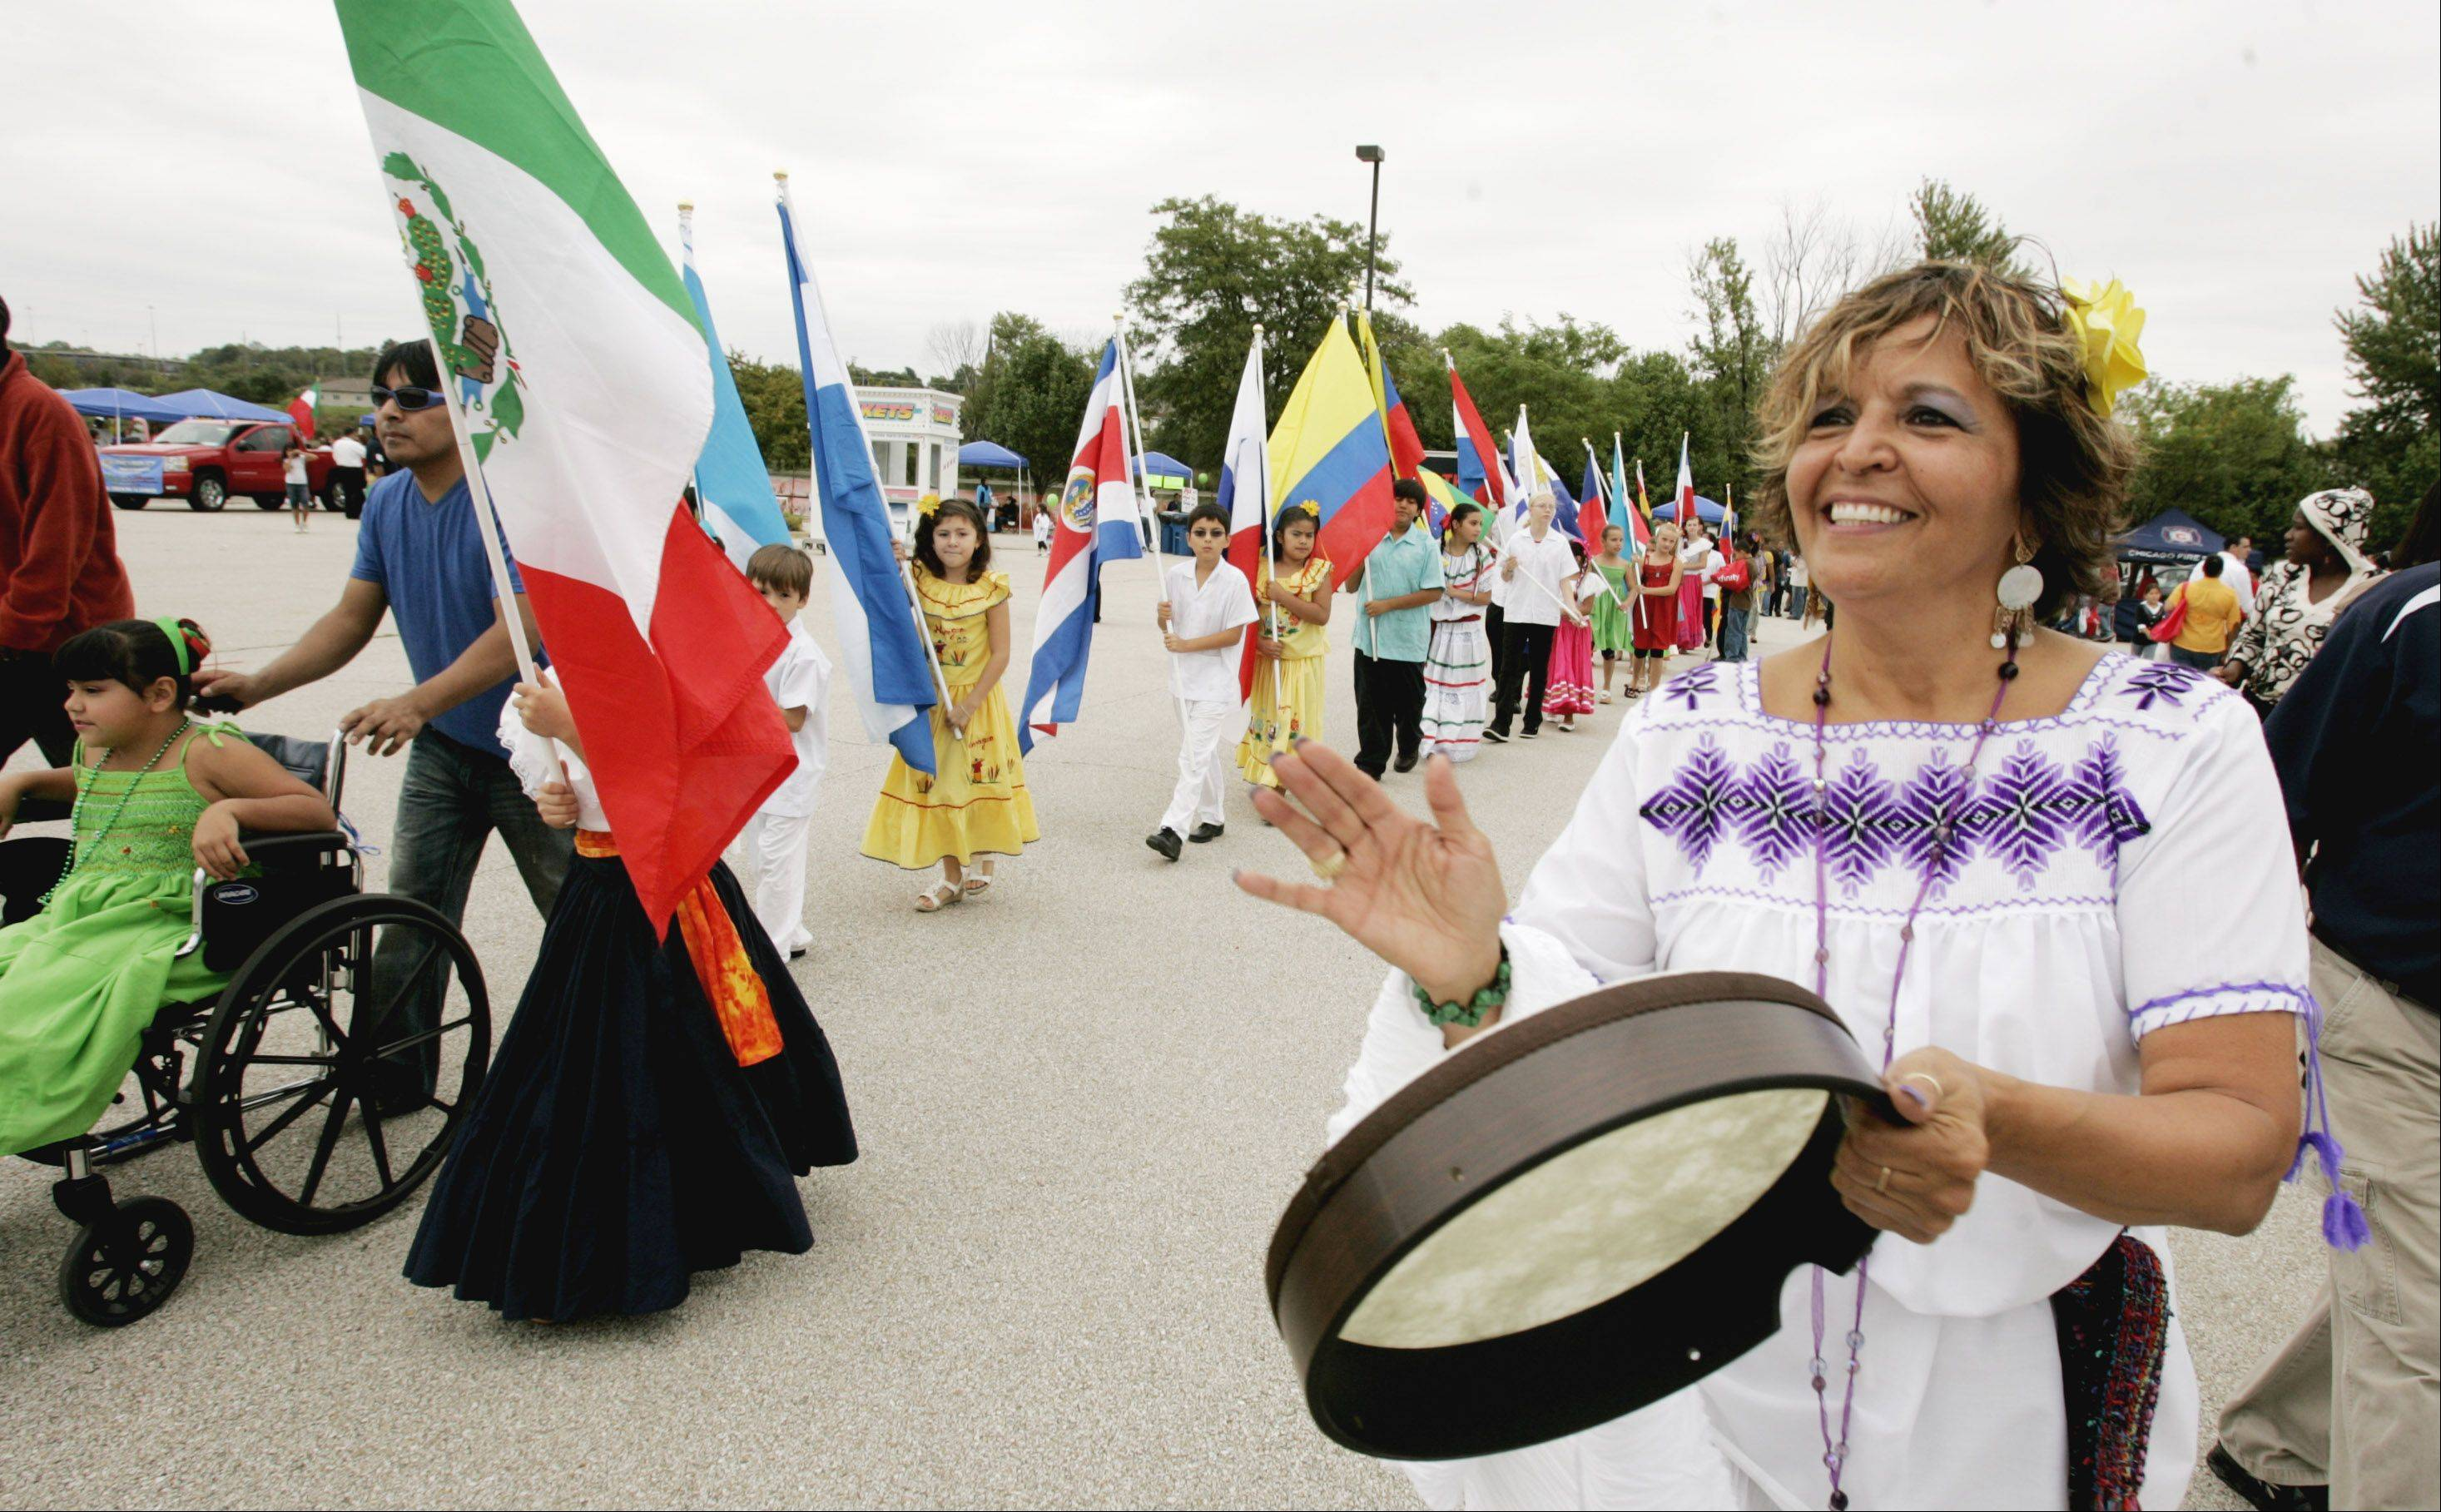 Fiestas Patrias gears up for crowds in Aurora